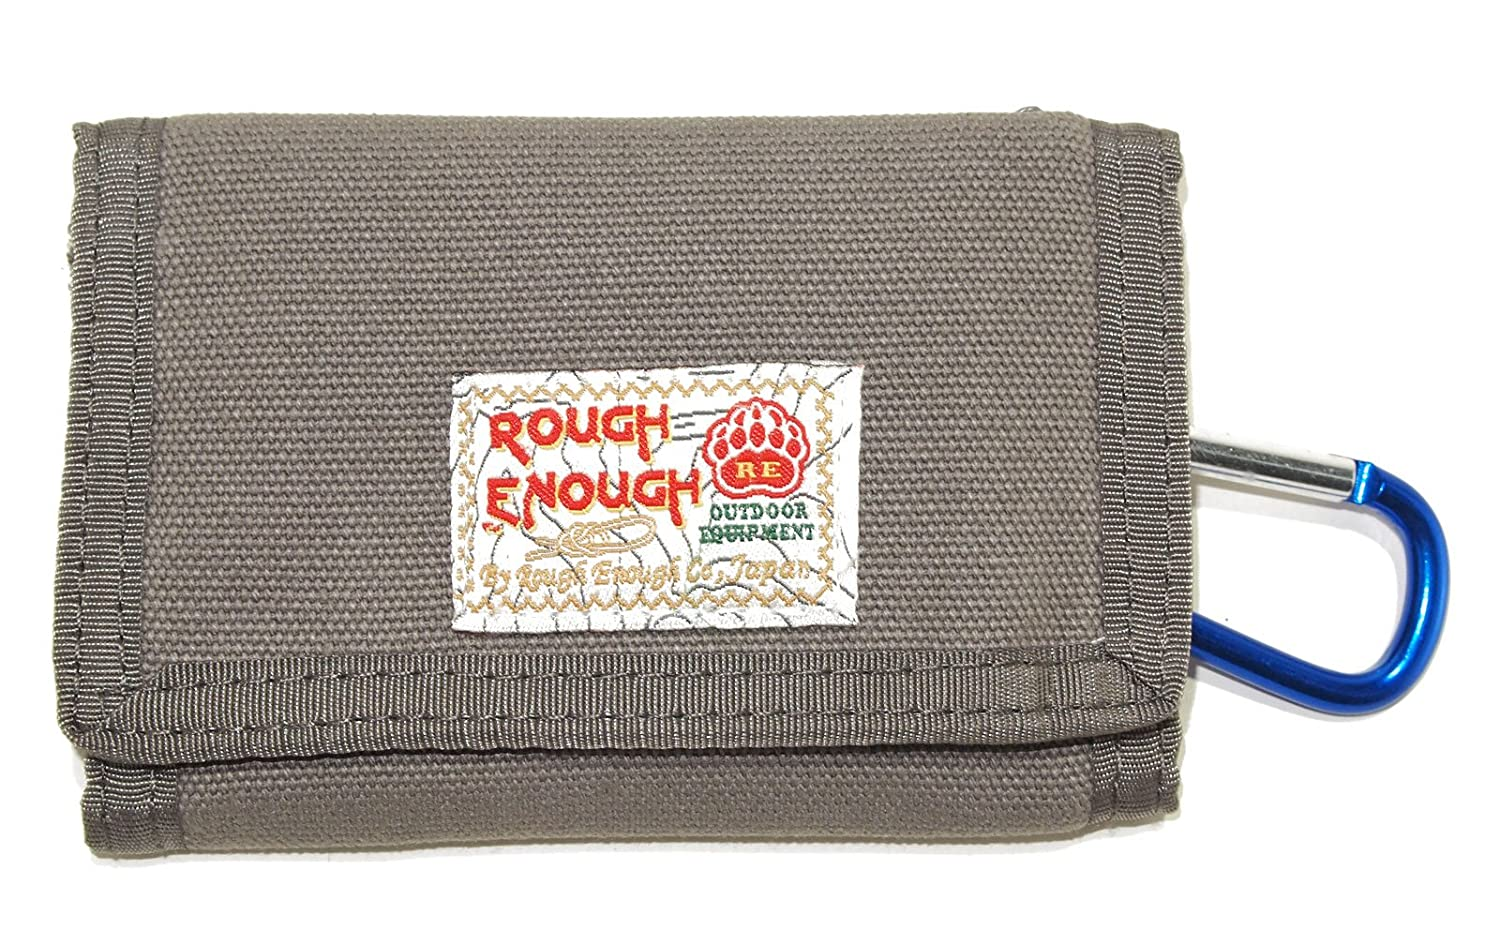 ROUGH ENOUGH Outdoor Multi-functional Classic Leisure Cool Vintage Fancy Stylish Small Size Trifold Durable Canvas Cash Wallet Purse Organizer With YKK Zipper Coin Pocket for School Boys Kids Students ROUGH ENOUGH INC. RE8003-5-7